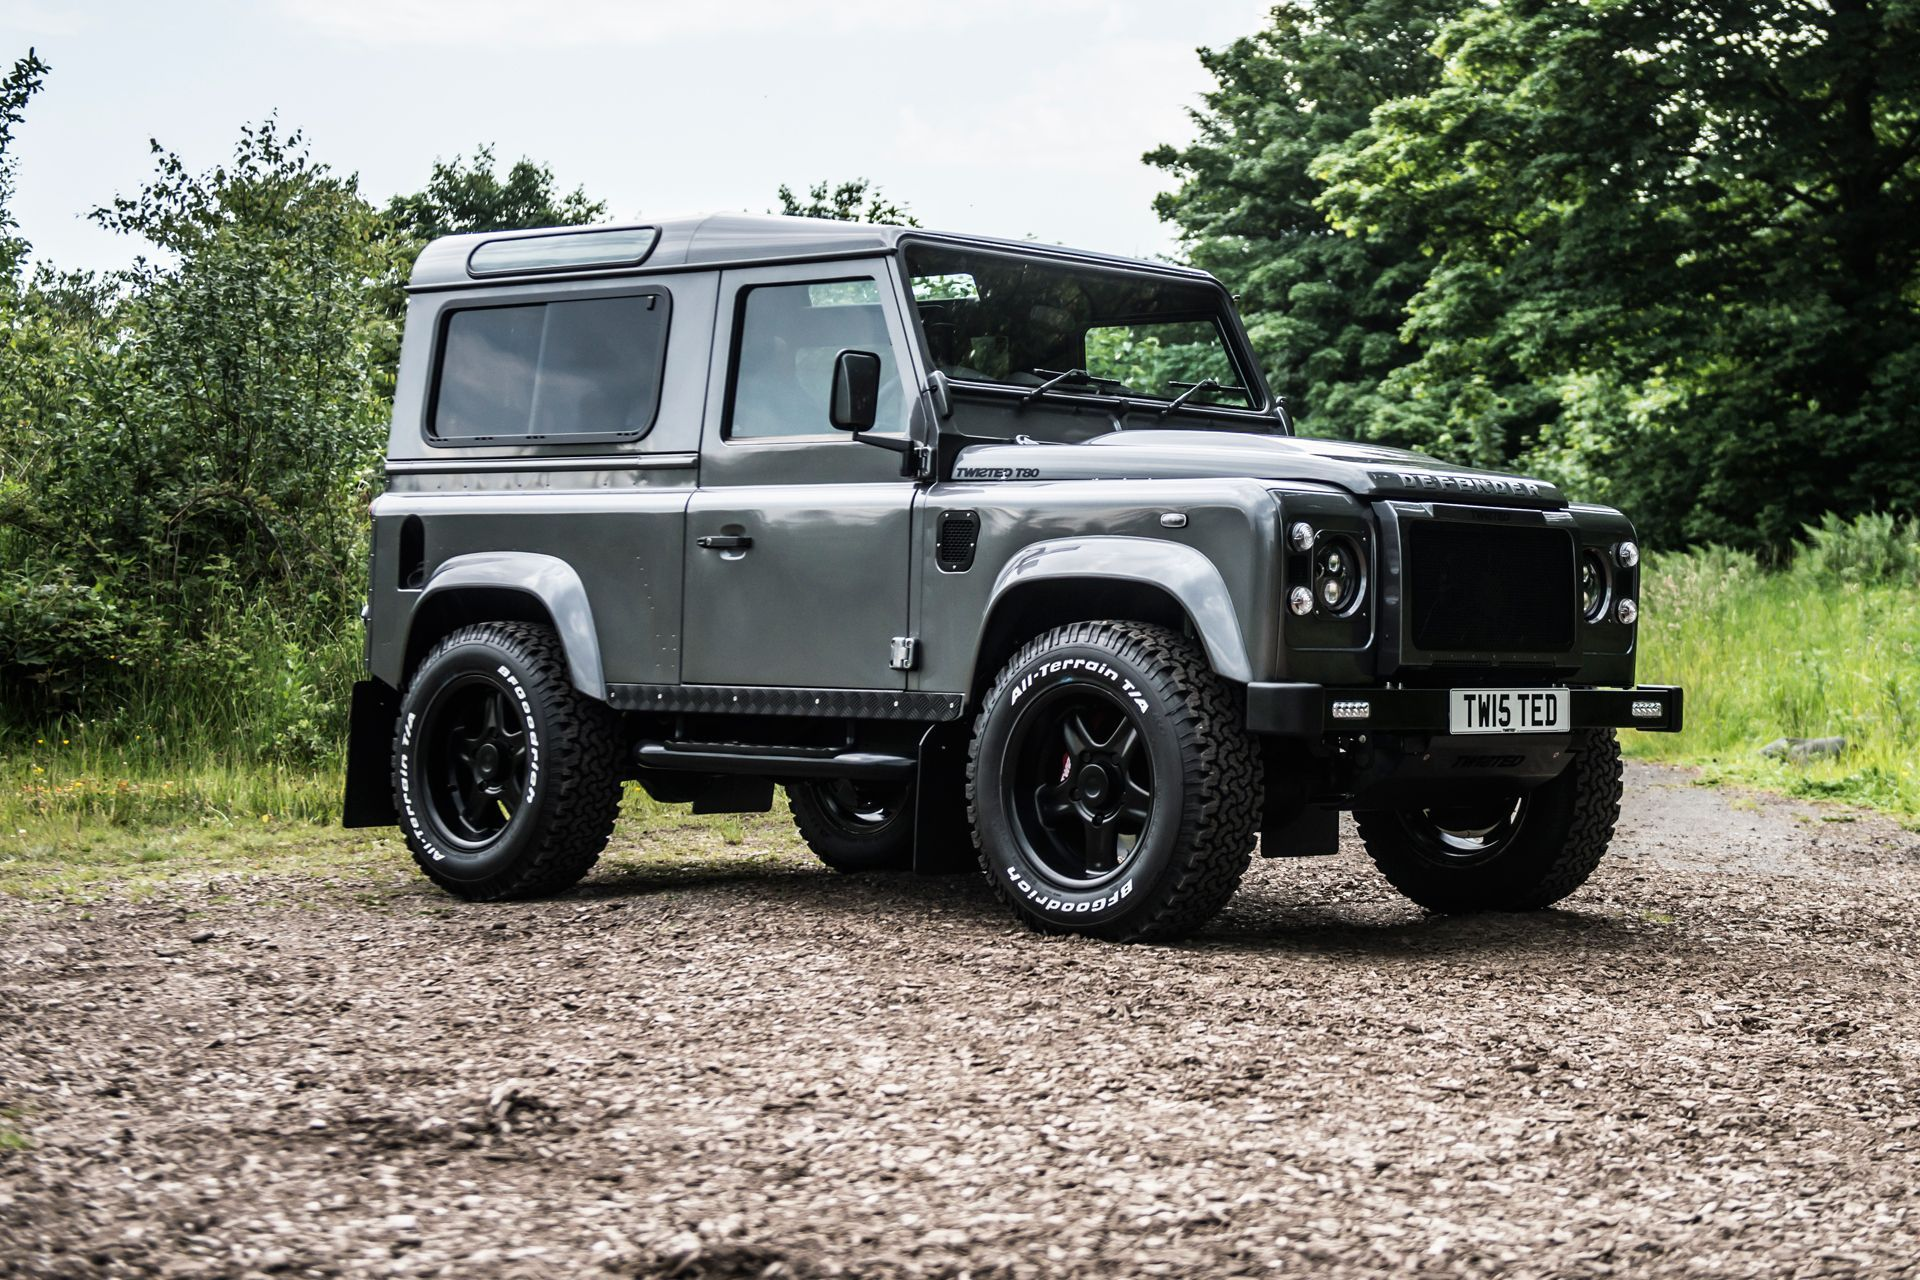 The Twisted Land Rover Defender Has 430bhp And You Want One Land Rover Land Rover Defender Defender